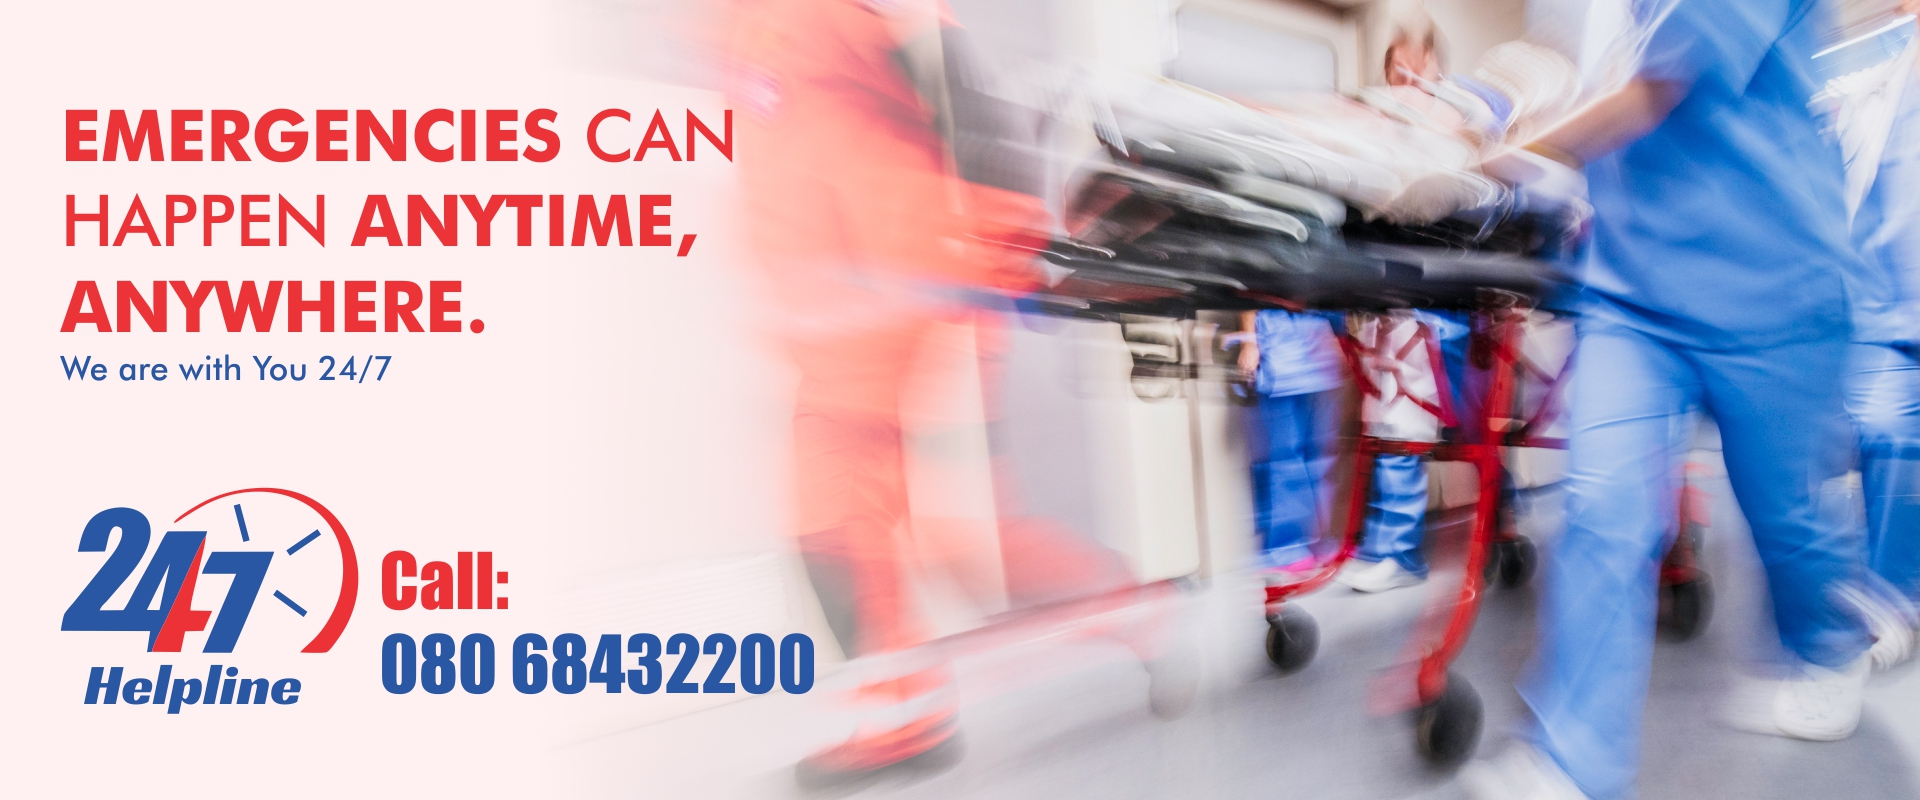 Multi Speciality Hospital in Bangalore